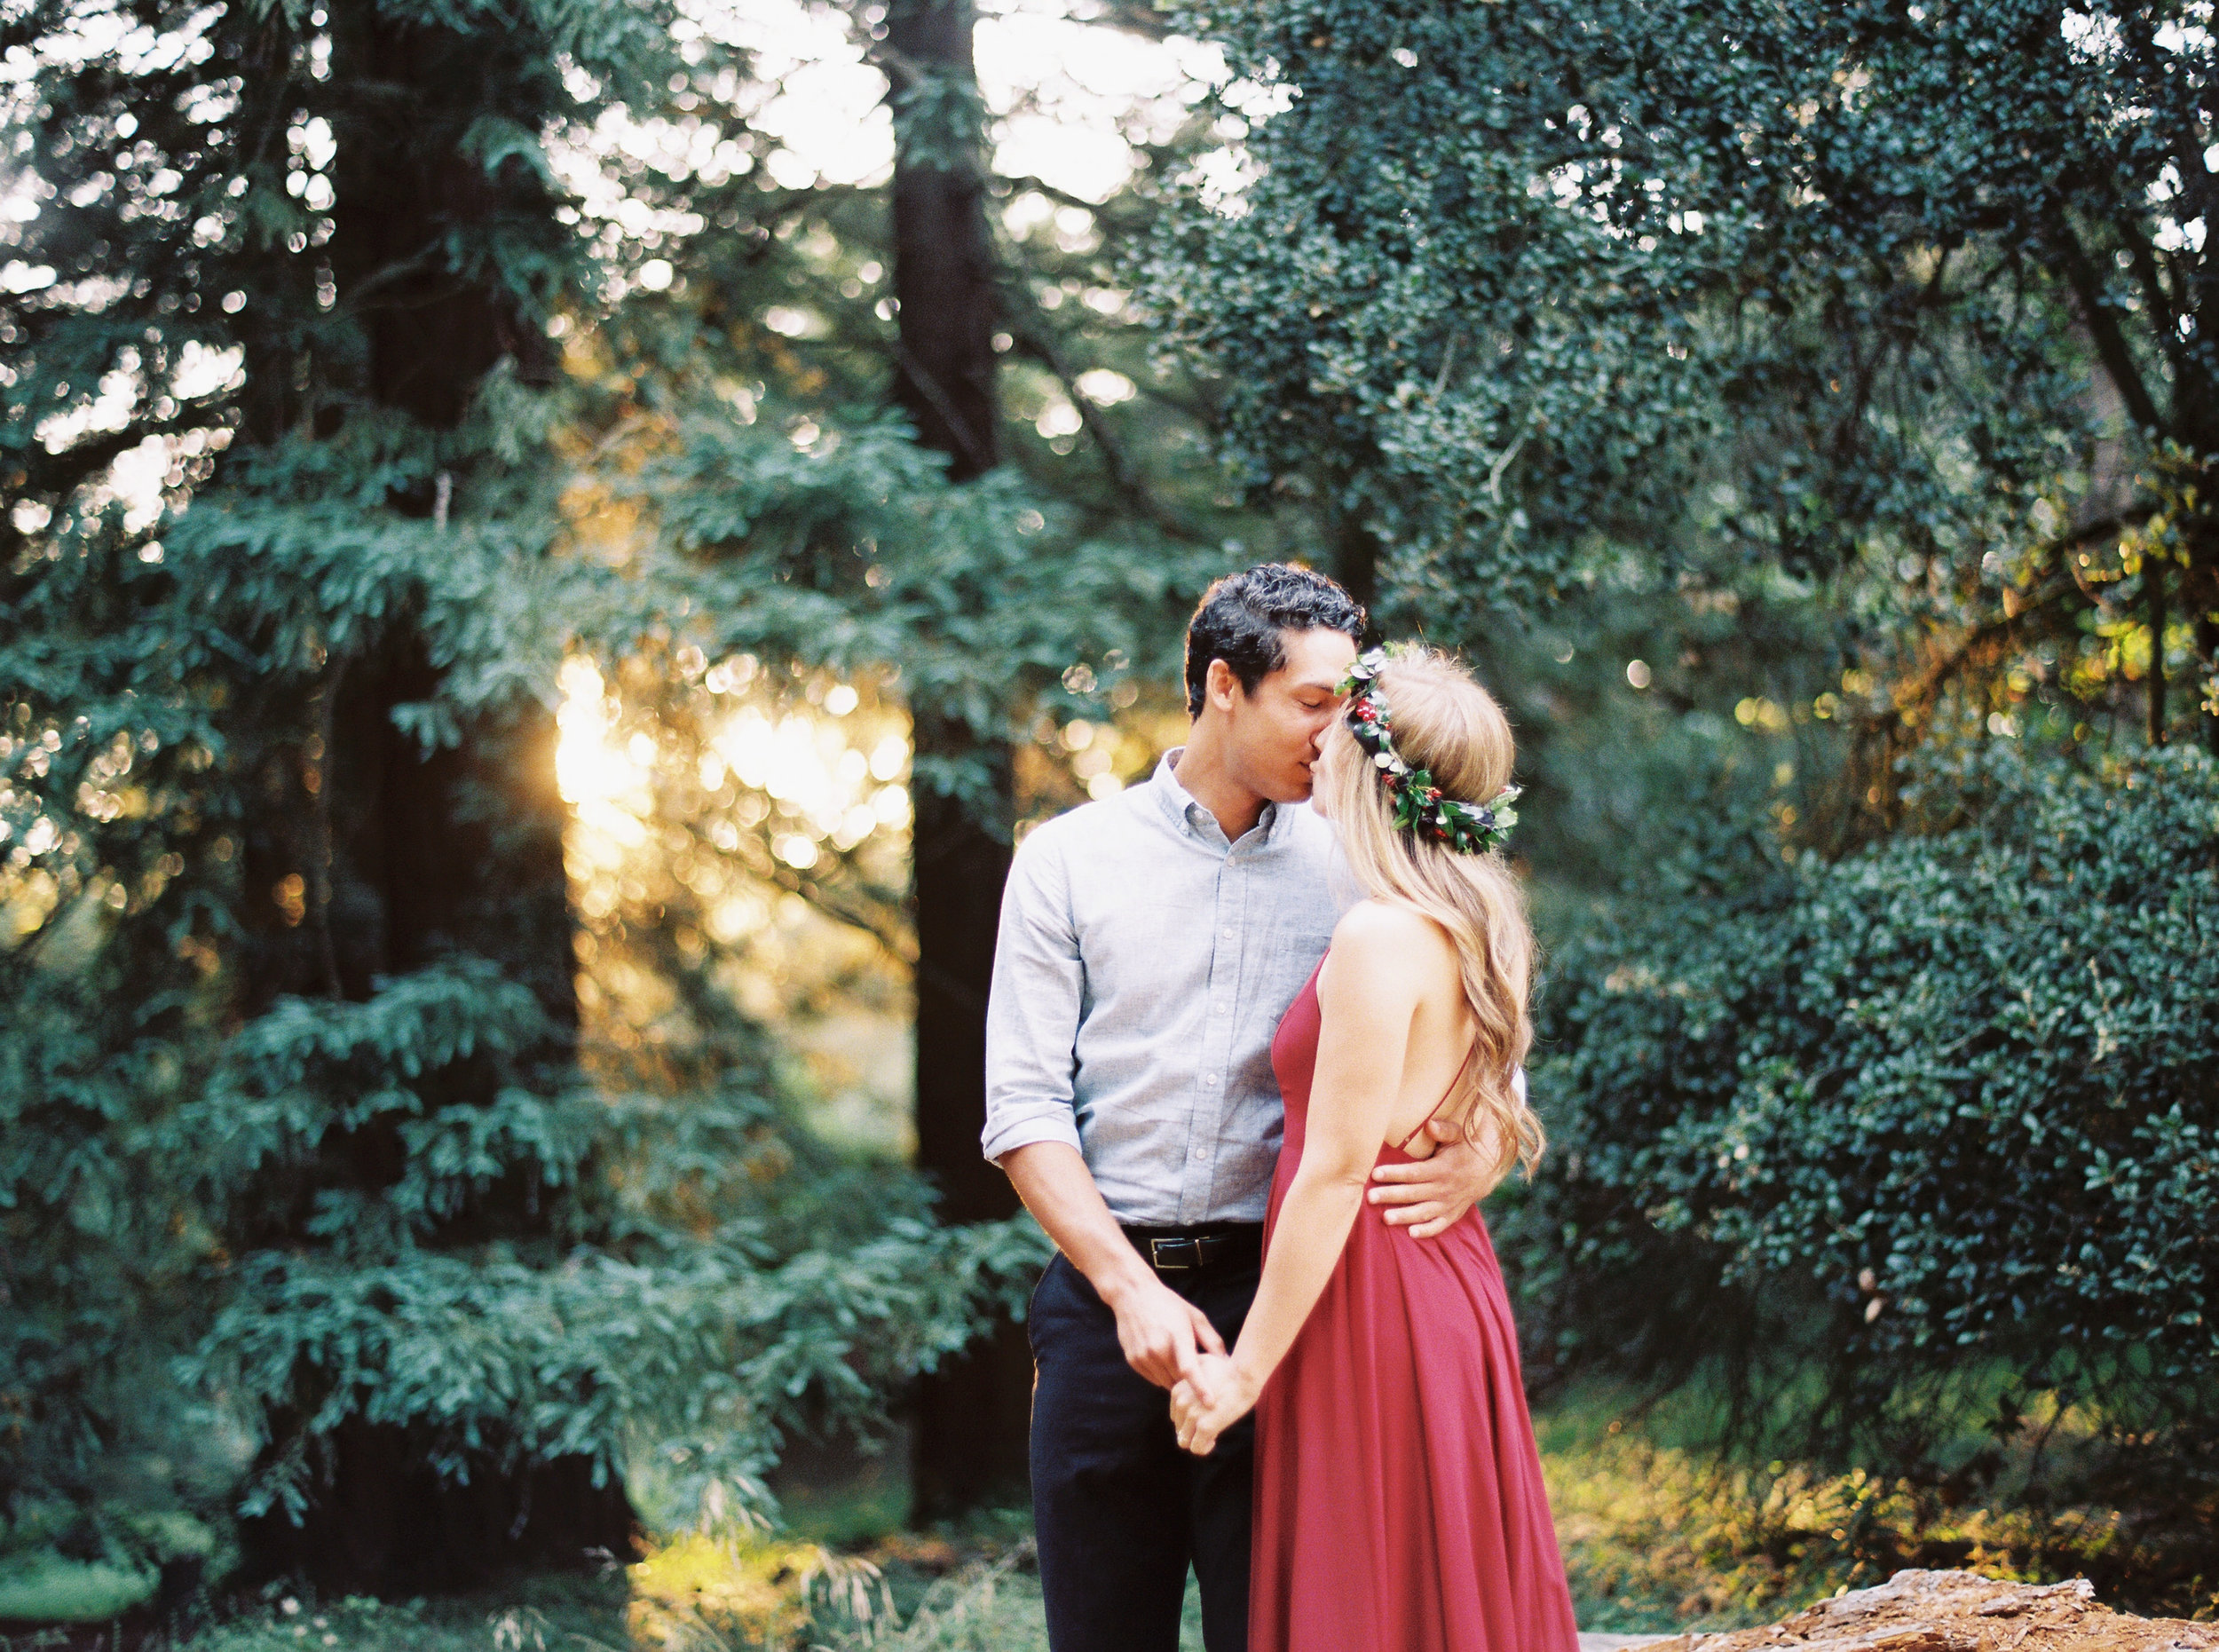 redwood-forest-engagement-in-oakland-california-98.jpg